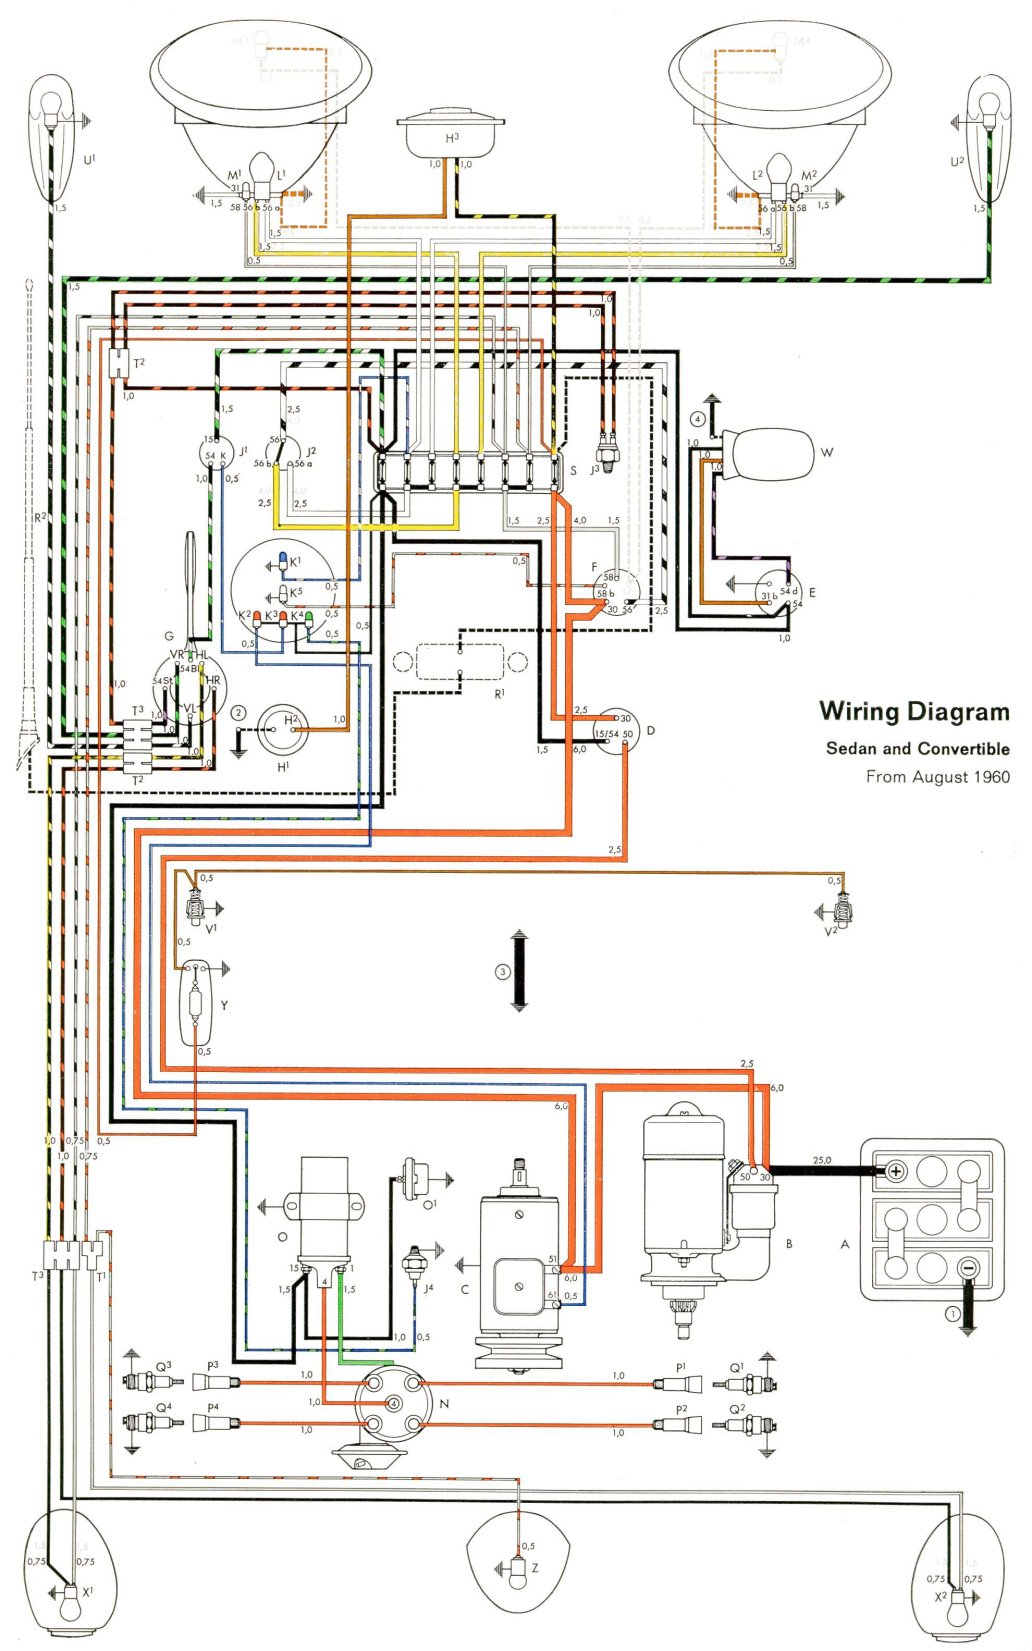 bug_61 1961 beetle wiring diagram thegoldenbug com 1972 beetle wiring diagram at letsshop.co